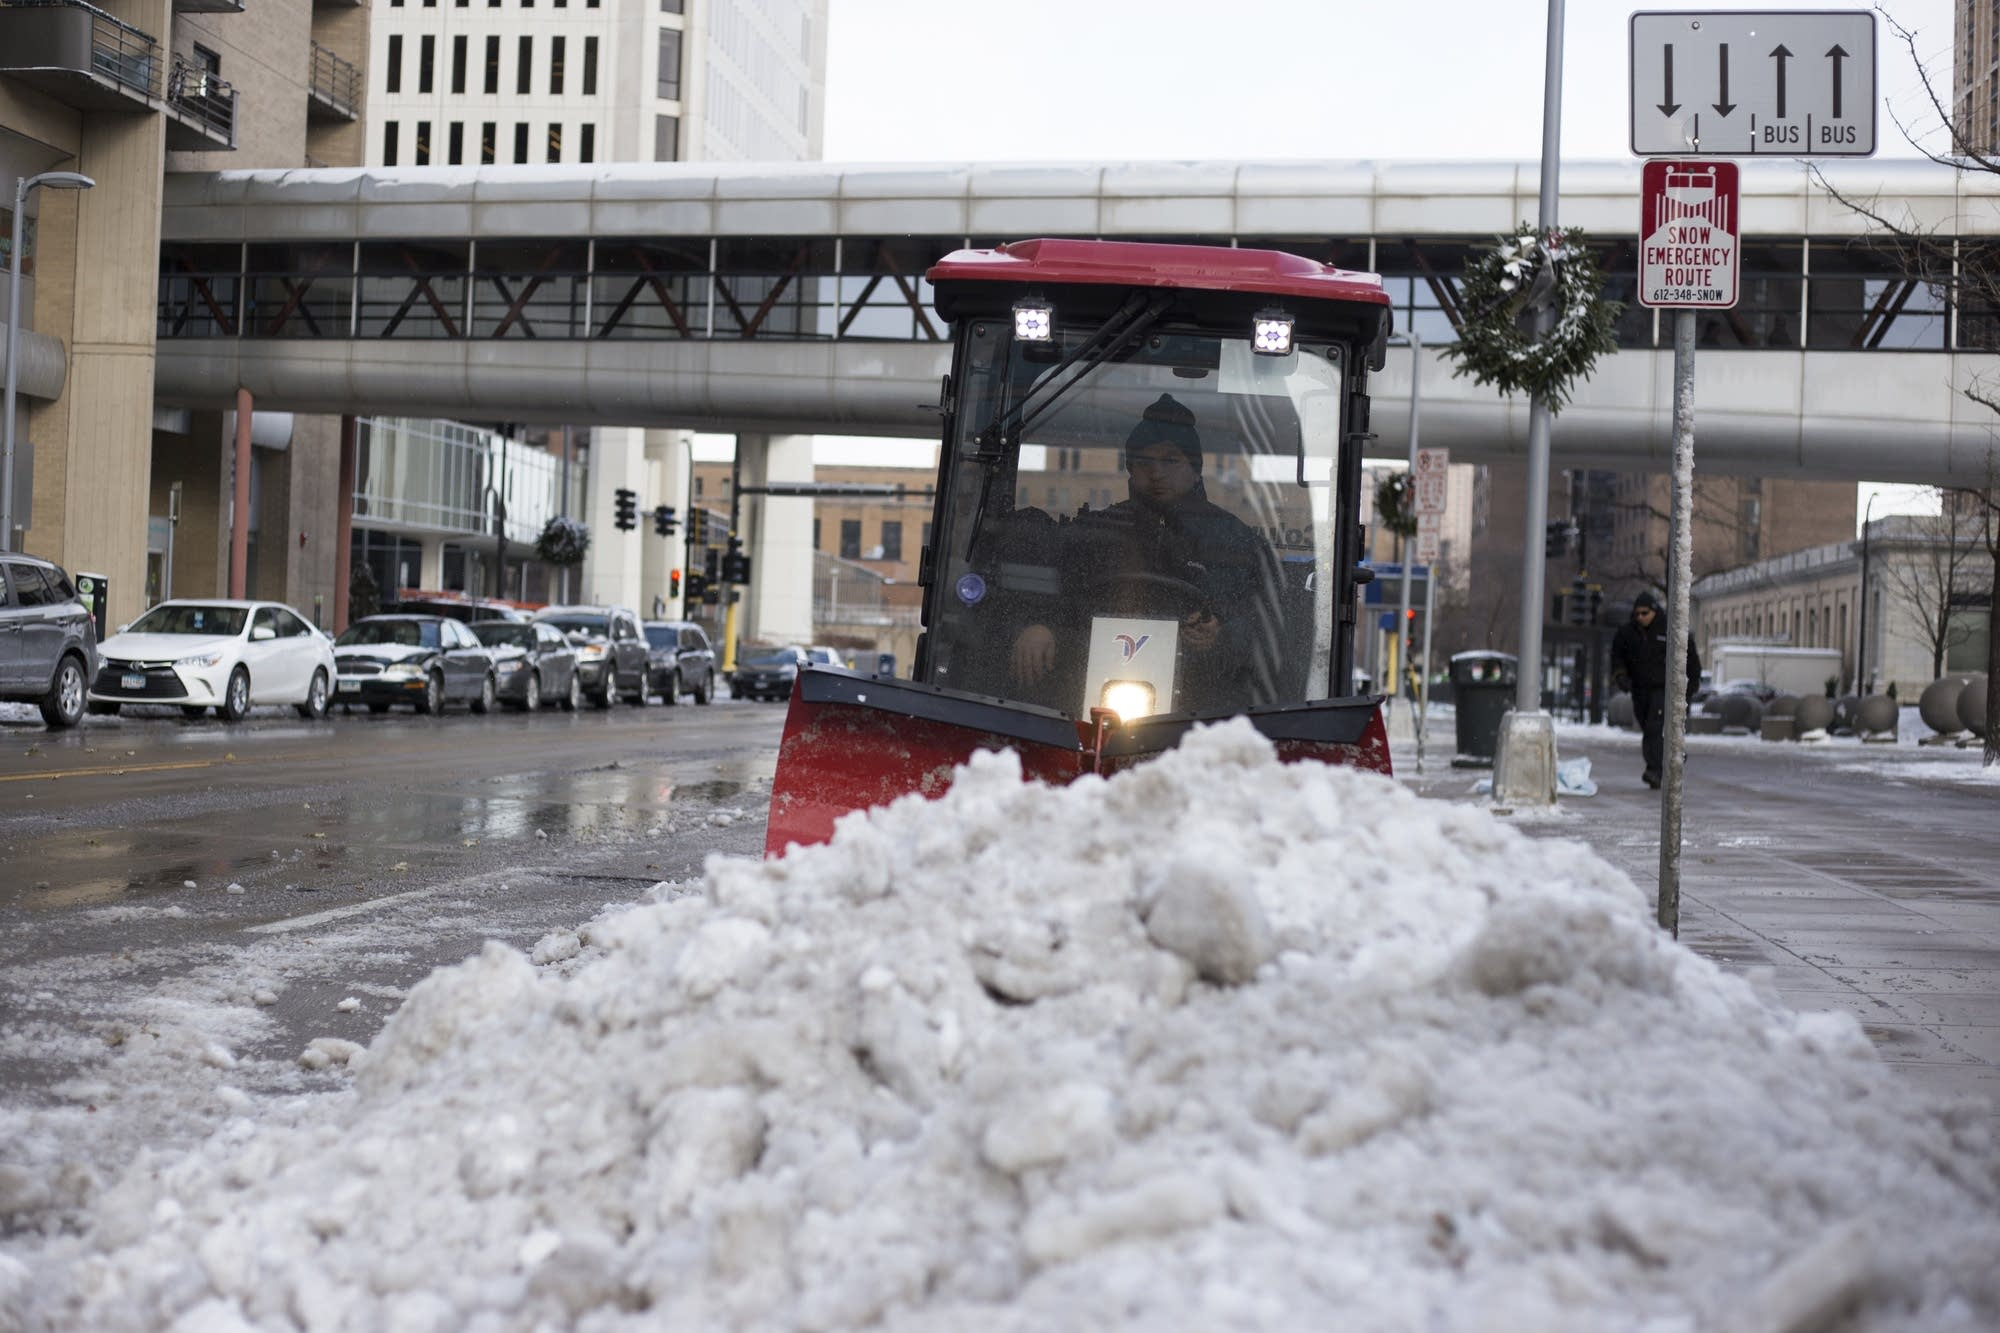 Minneapolis streets have snow removal crews out to clear the first snow.